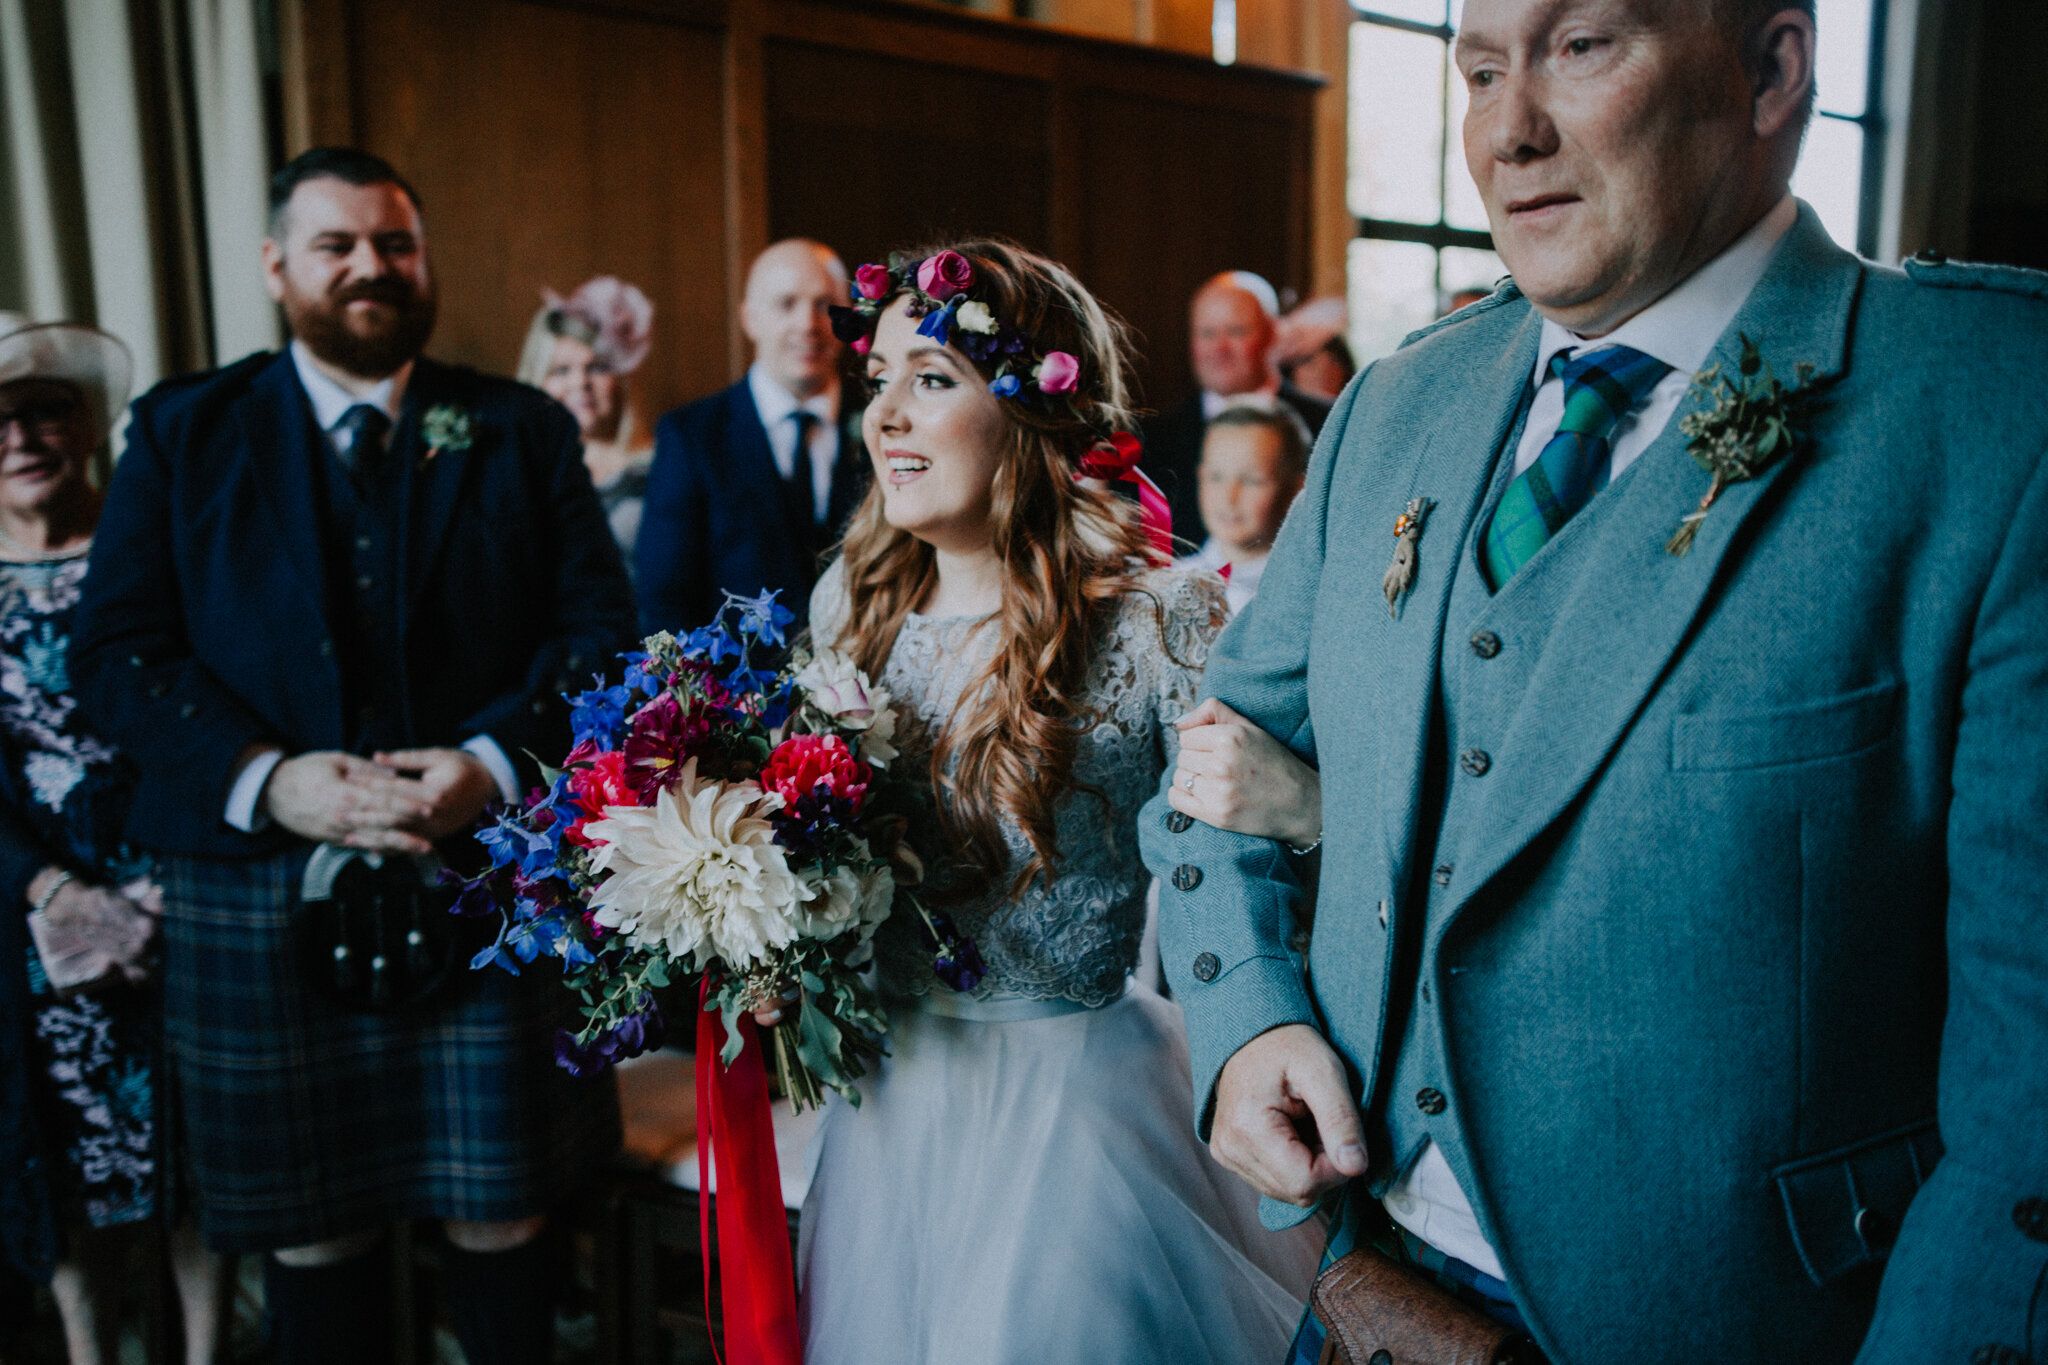 The bride is happily walking with the father